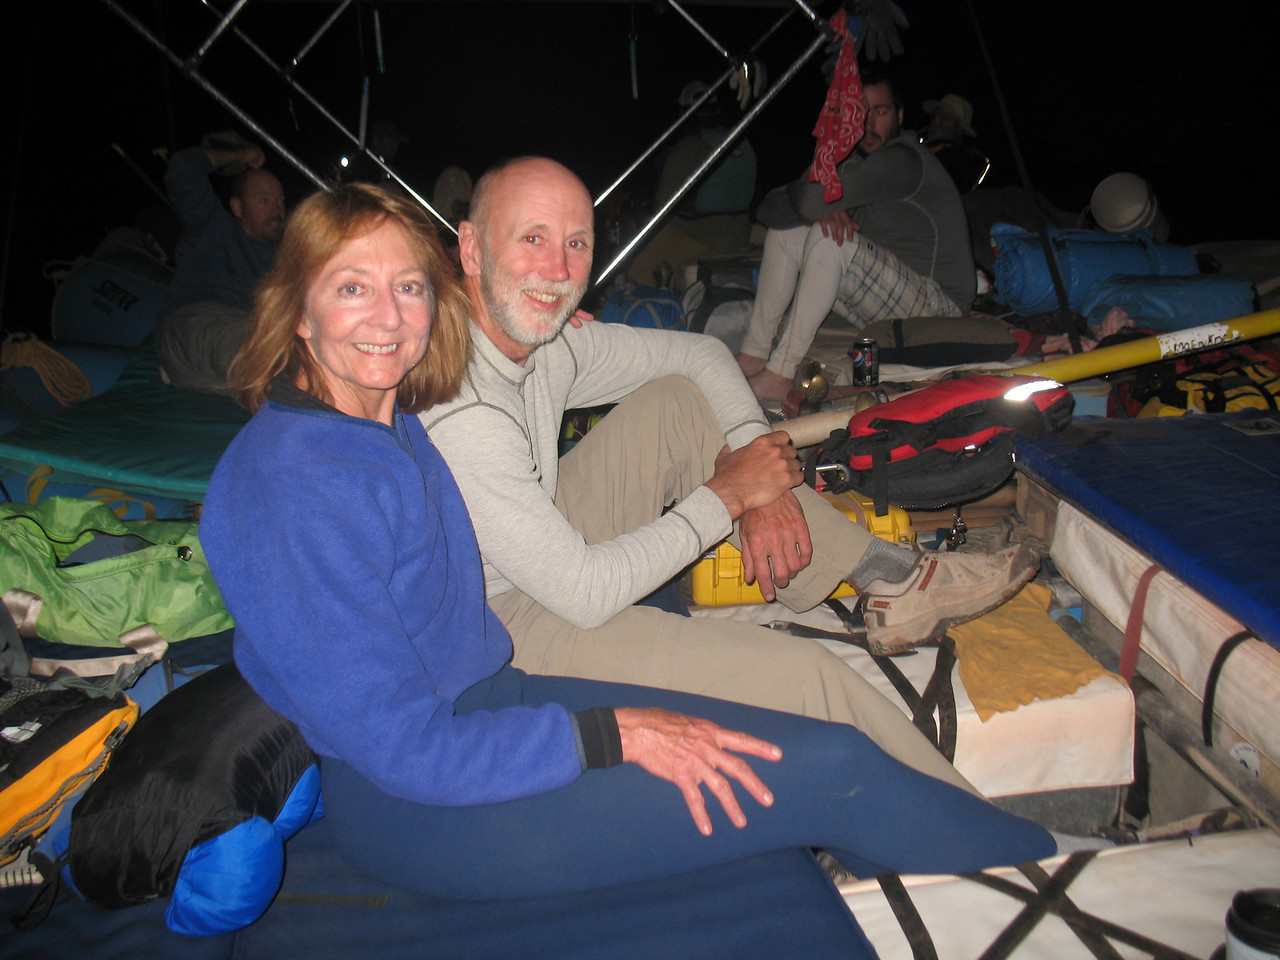 Sherry and Joe during the Night Float.